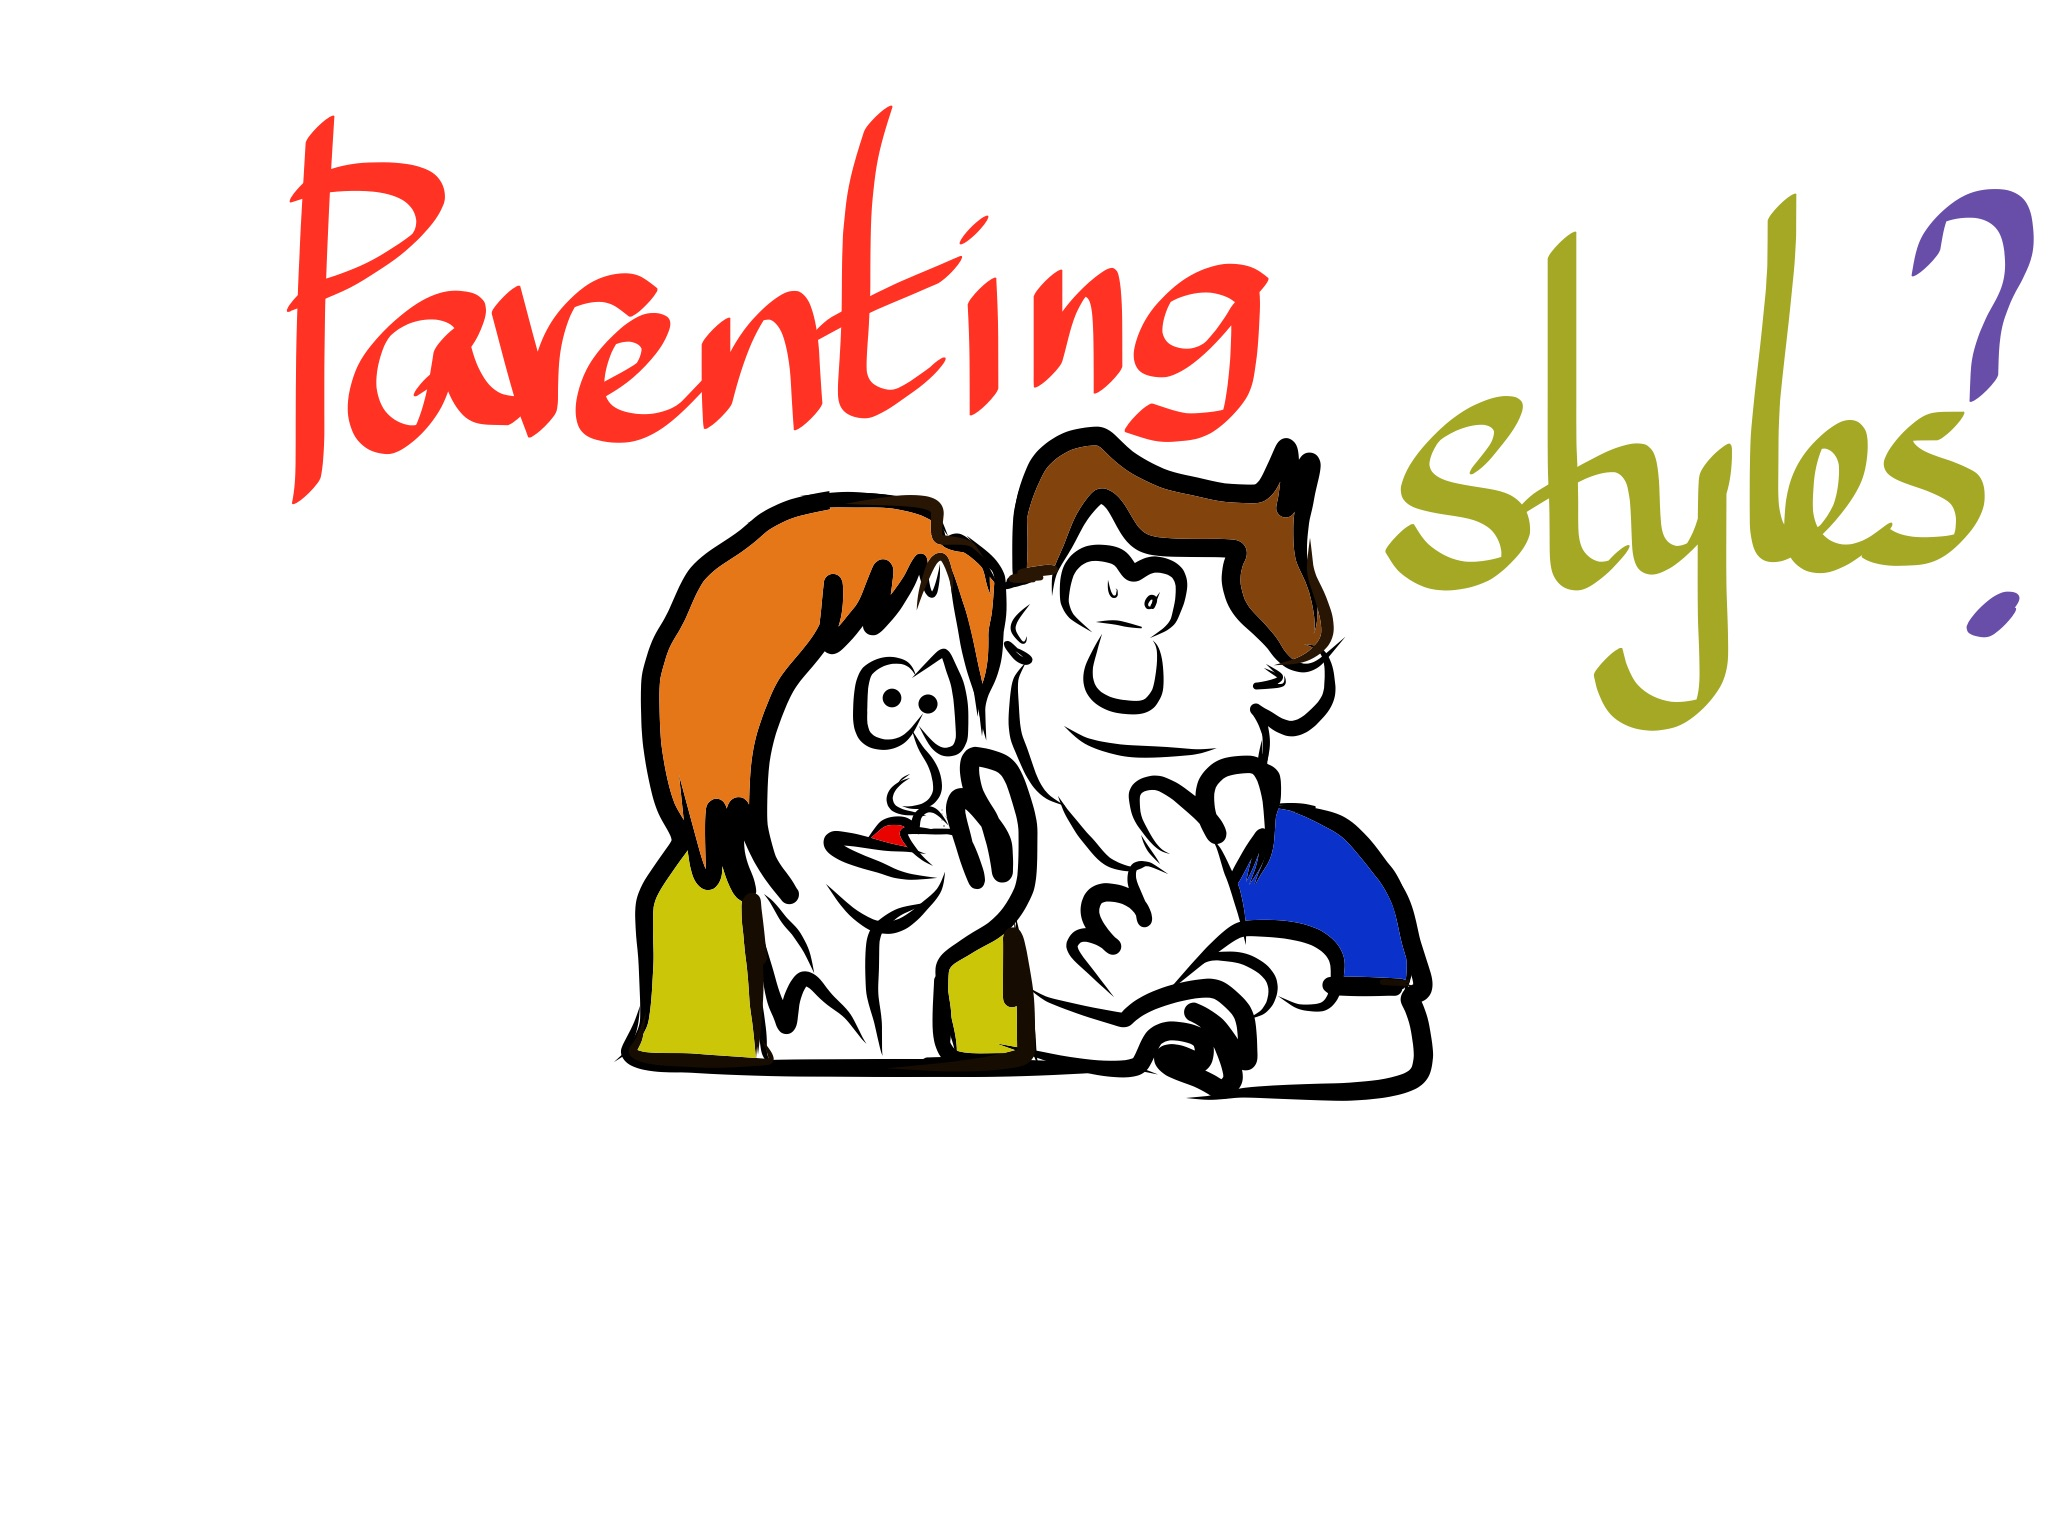 What Parenting Style do you use?